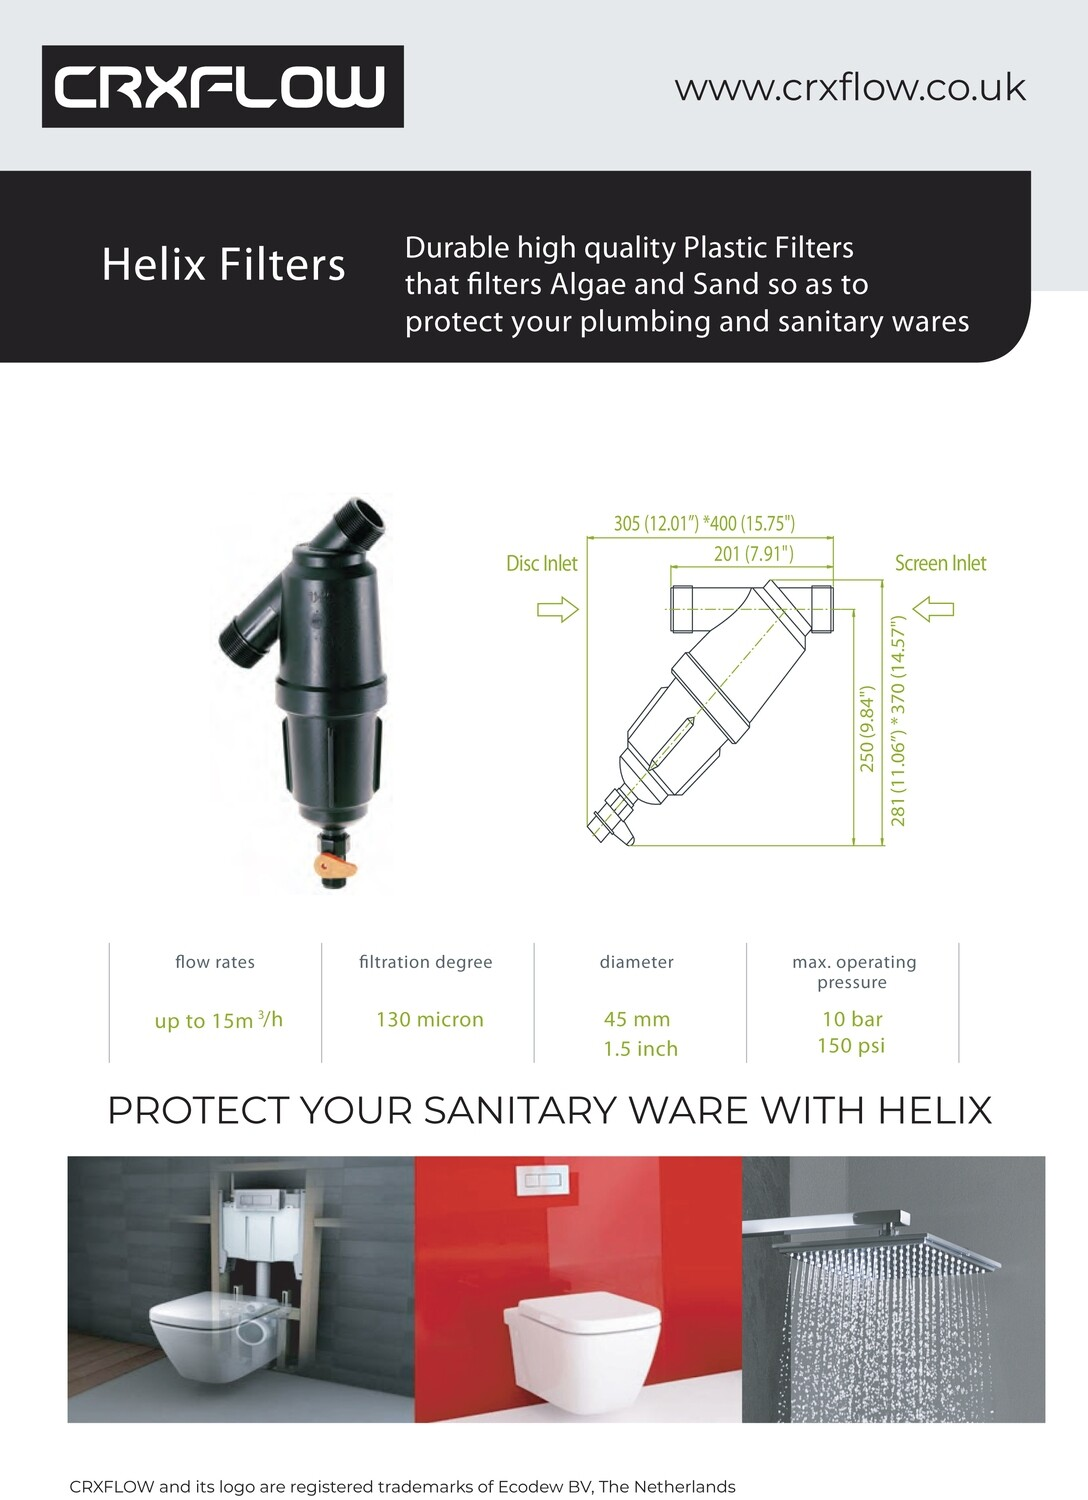 HELIX FILTER 1.5 INCH